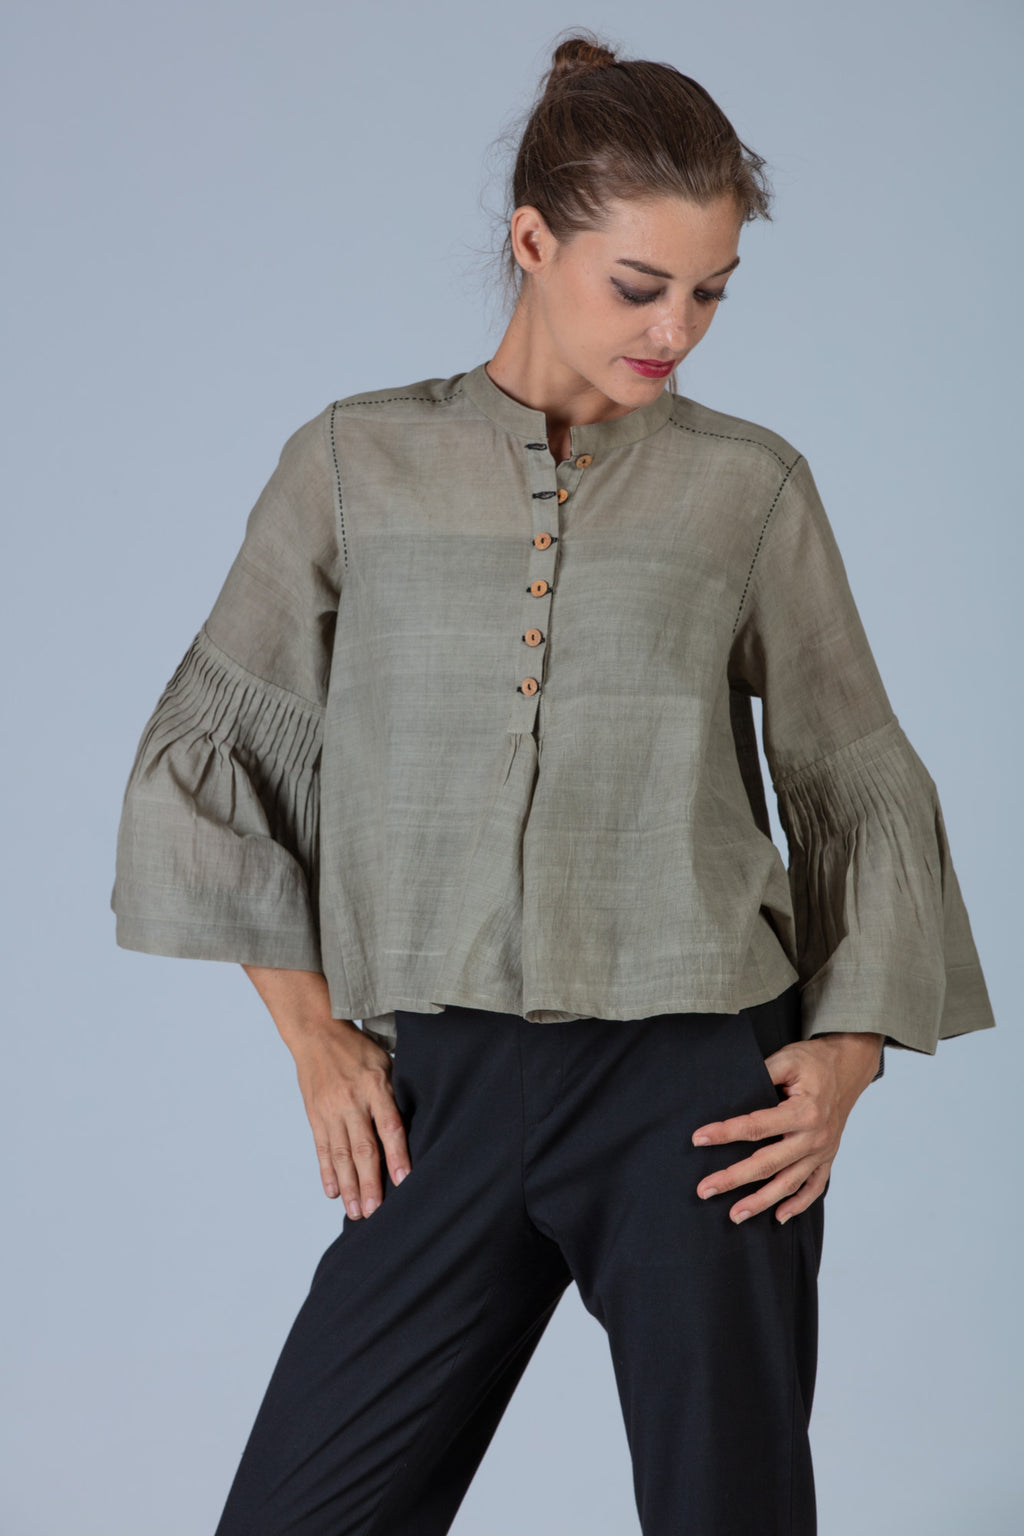 Tulsi dyed Organic cotton Top - SAIYUKTA - Upasana Design Studio